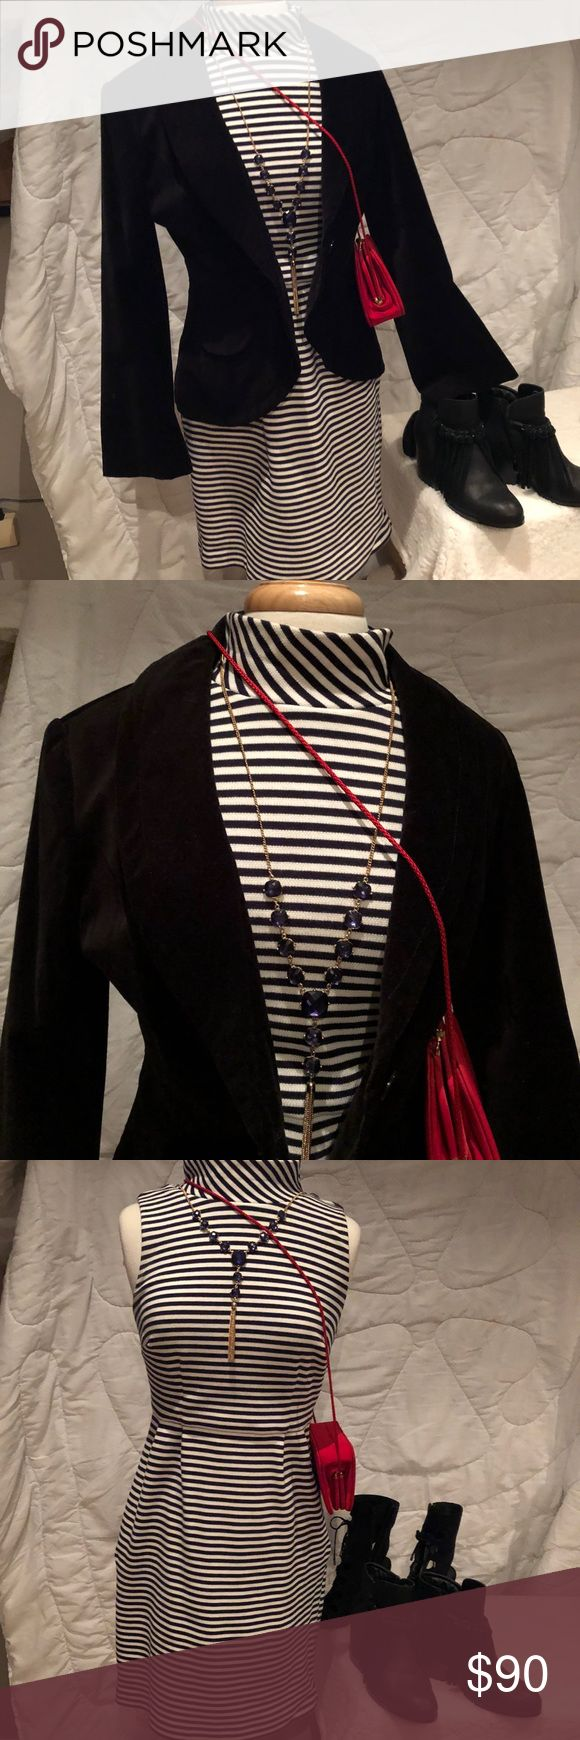 Boden Dress w Velvet Blazer Boden Black & white stripe funnel neck dress.  Size 8.  Bodice lined (not skirt).  Front seams.  Side zip. 4 pleats. H98% cotton & was 2% elastane.  32 inches across bust.  36 inches hip.  33 1/2 inches long. ———Newport News Vintage Black Blazer. Marked size 12 but it's a size 8. 2 Faux front pockets.  Shawl collar. One button close. Cutaway hem.  Fully lined.  100% cotton & 100% poly full lining.  34 inches bust.  23 1/2 inches long. ——All excellent condition.  I…